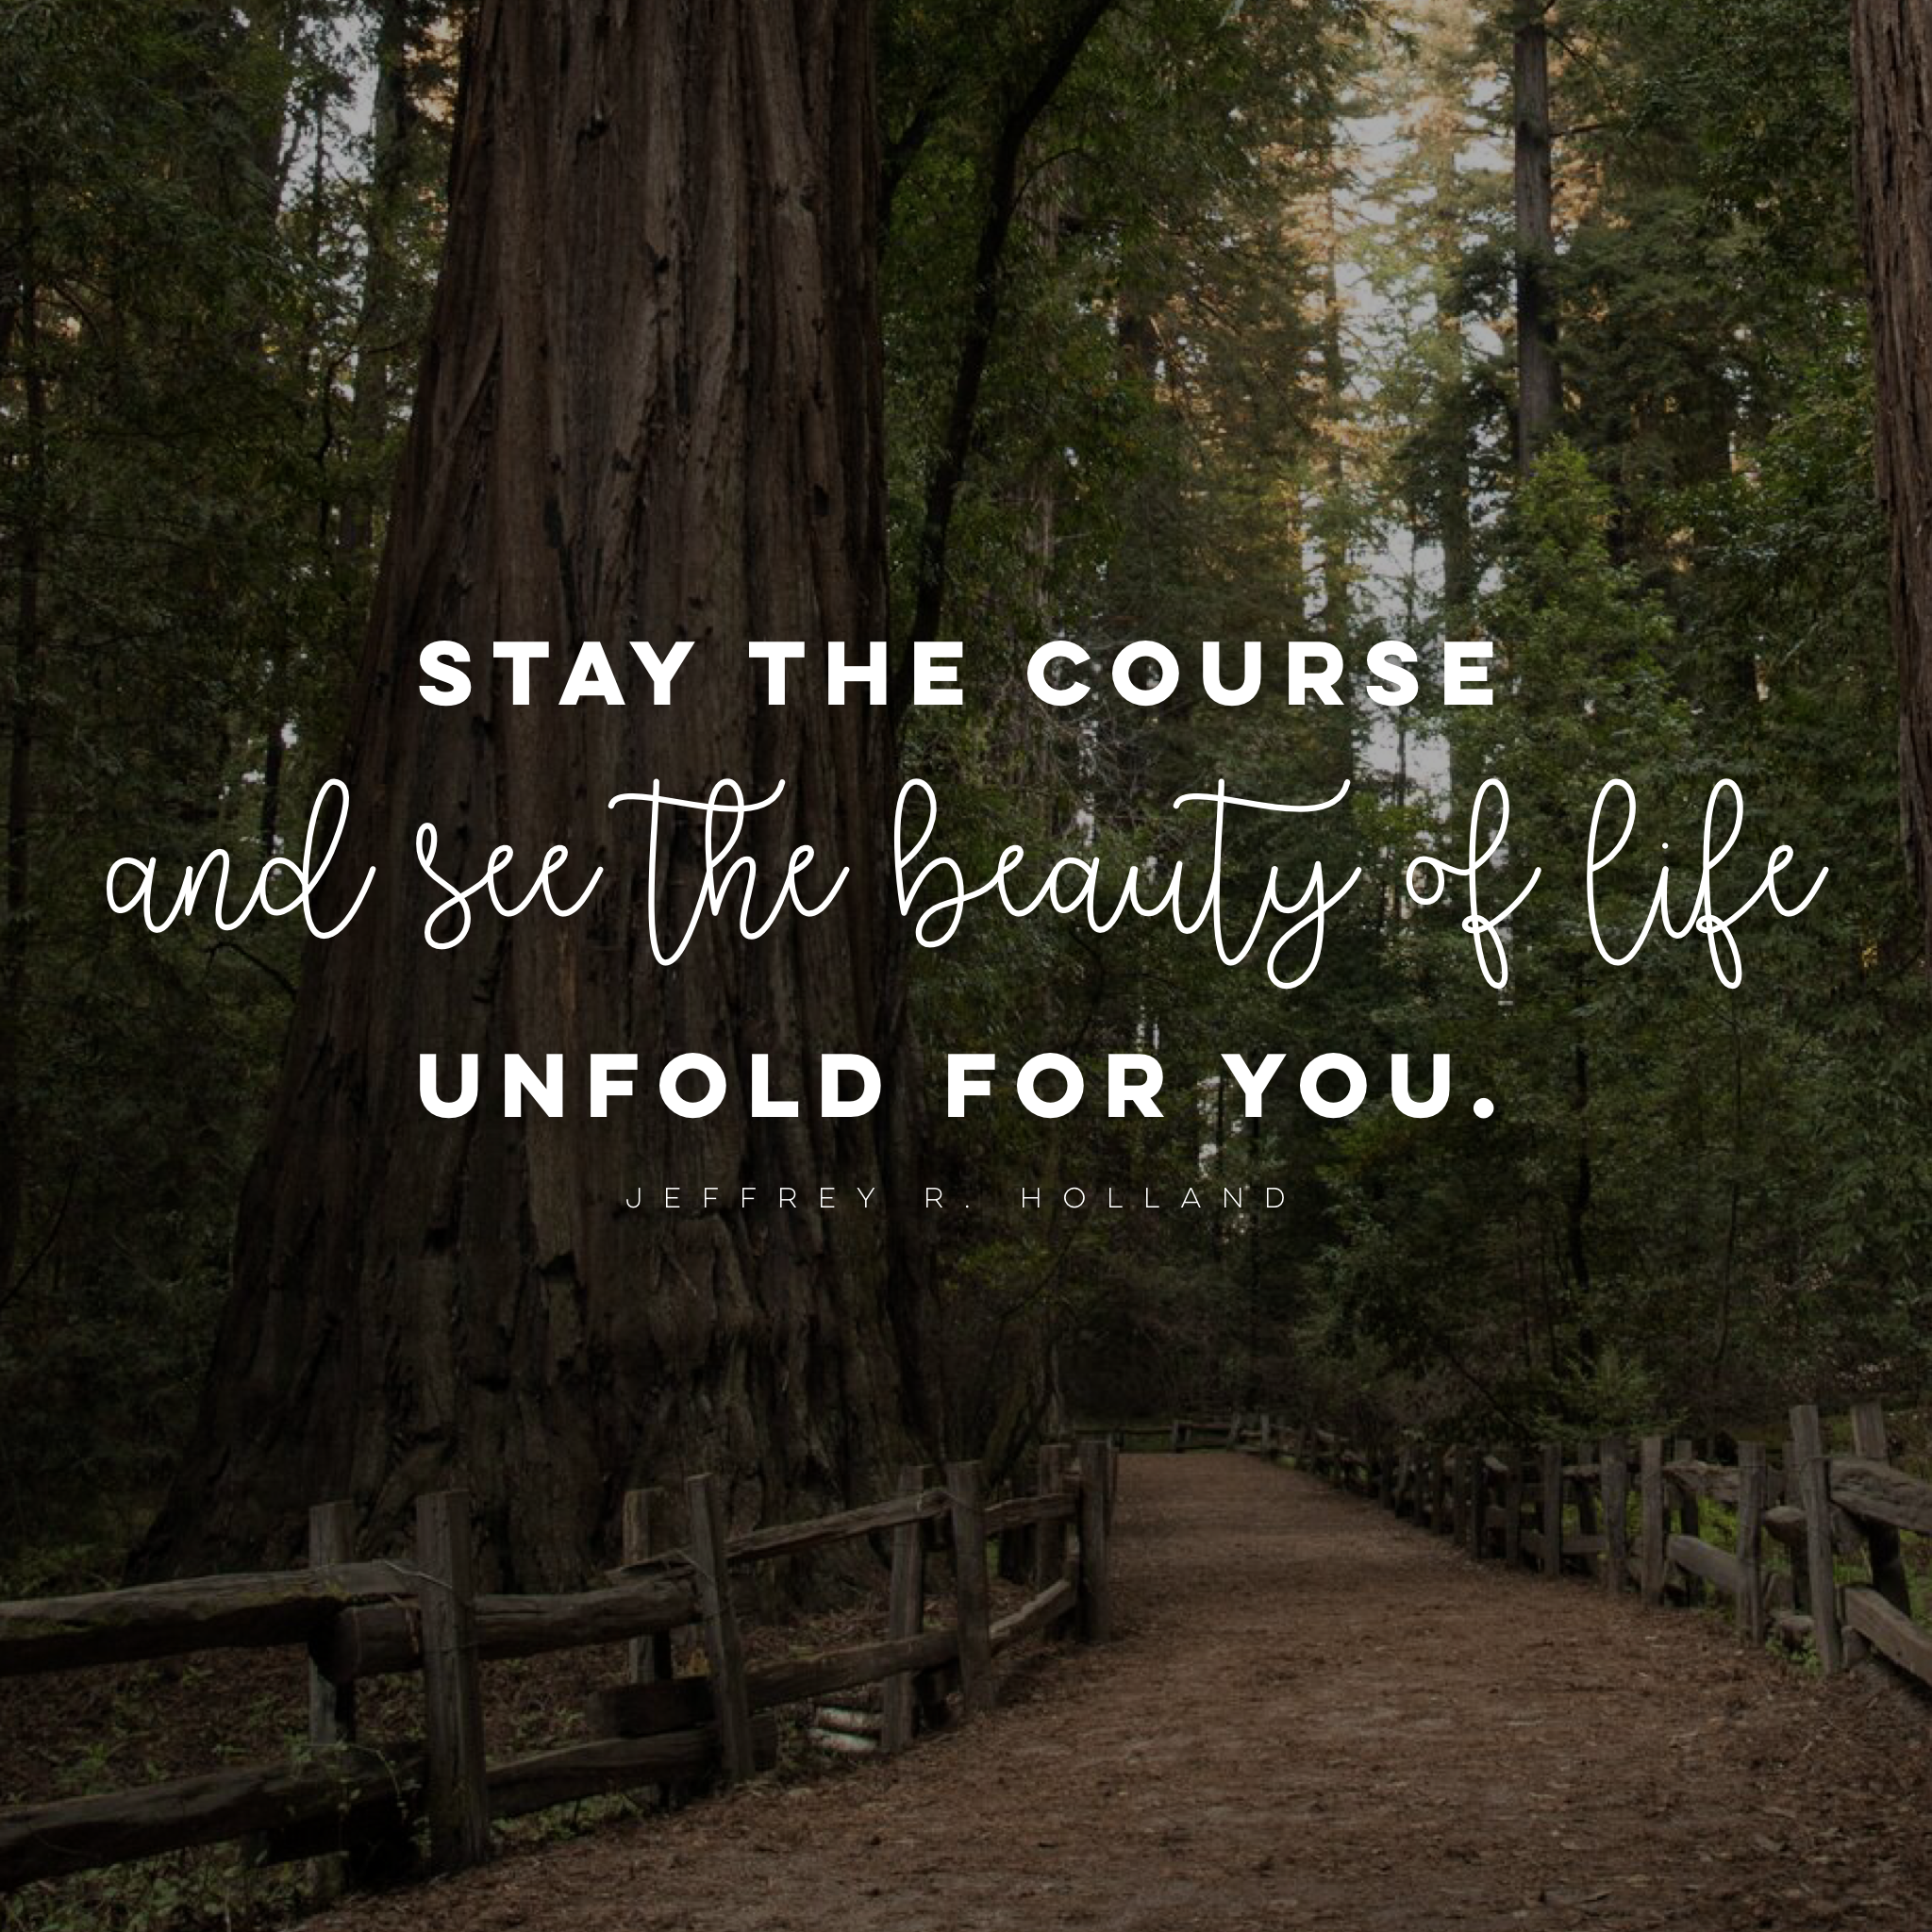 Stay The Course And See The Beauty Of Life Unfold For You Lds